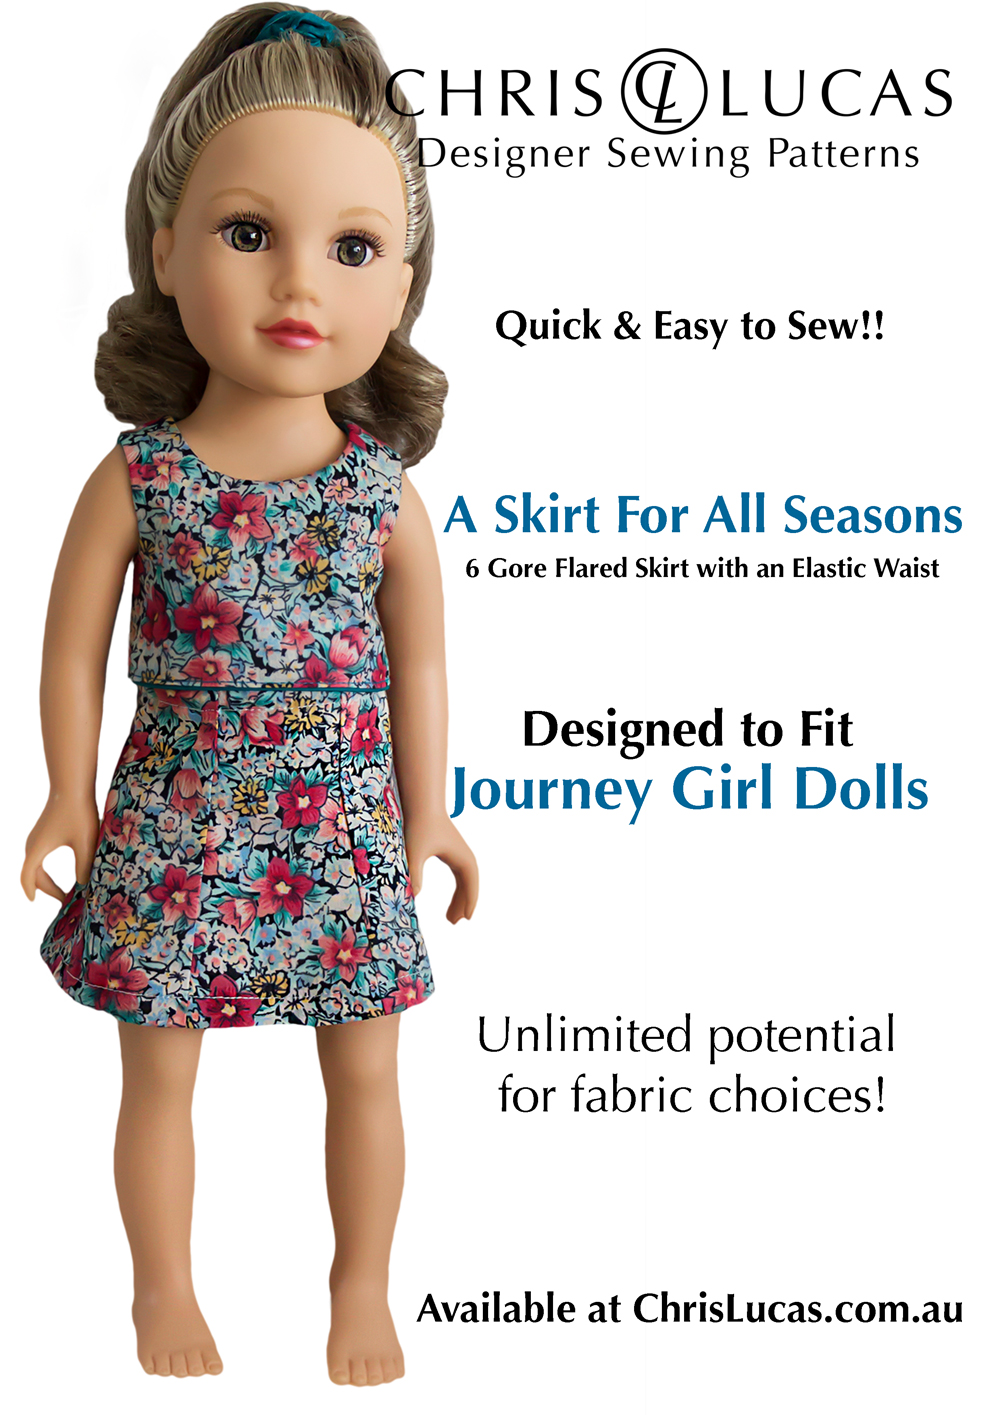 journey-girl-dolls-sewing-pattern-2-a-skirt-for-all-seasons-chris-lucas-designs